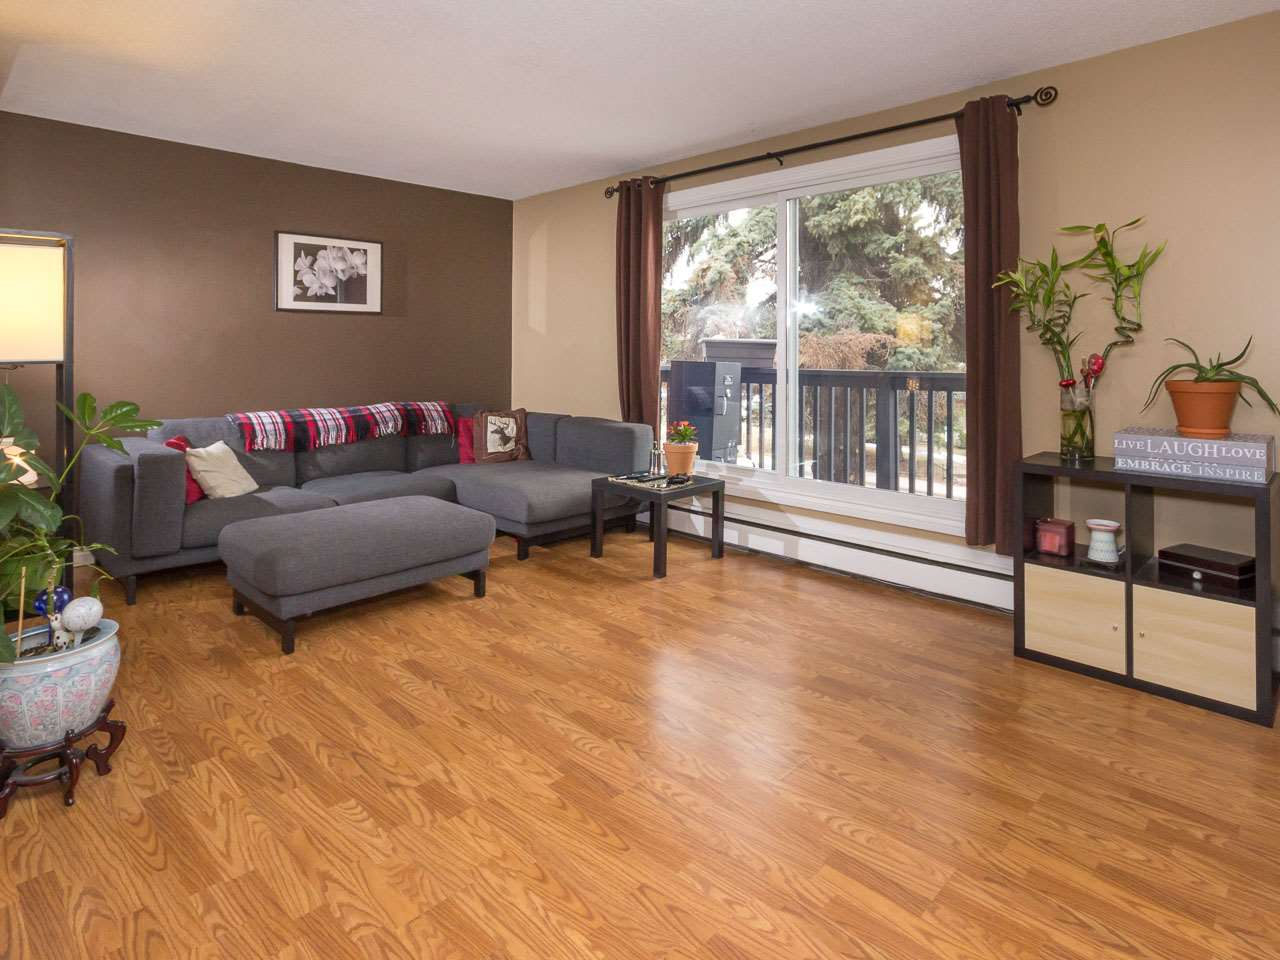 Main Photo: 307 6307 118 Avenue in Edmonton: Zone 09 Condo for sale : MLS® # E4079861